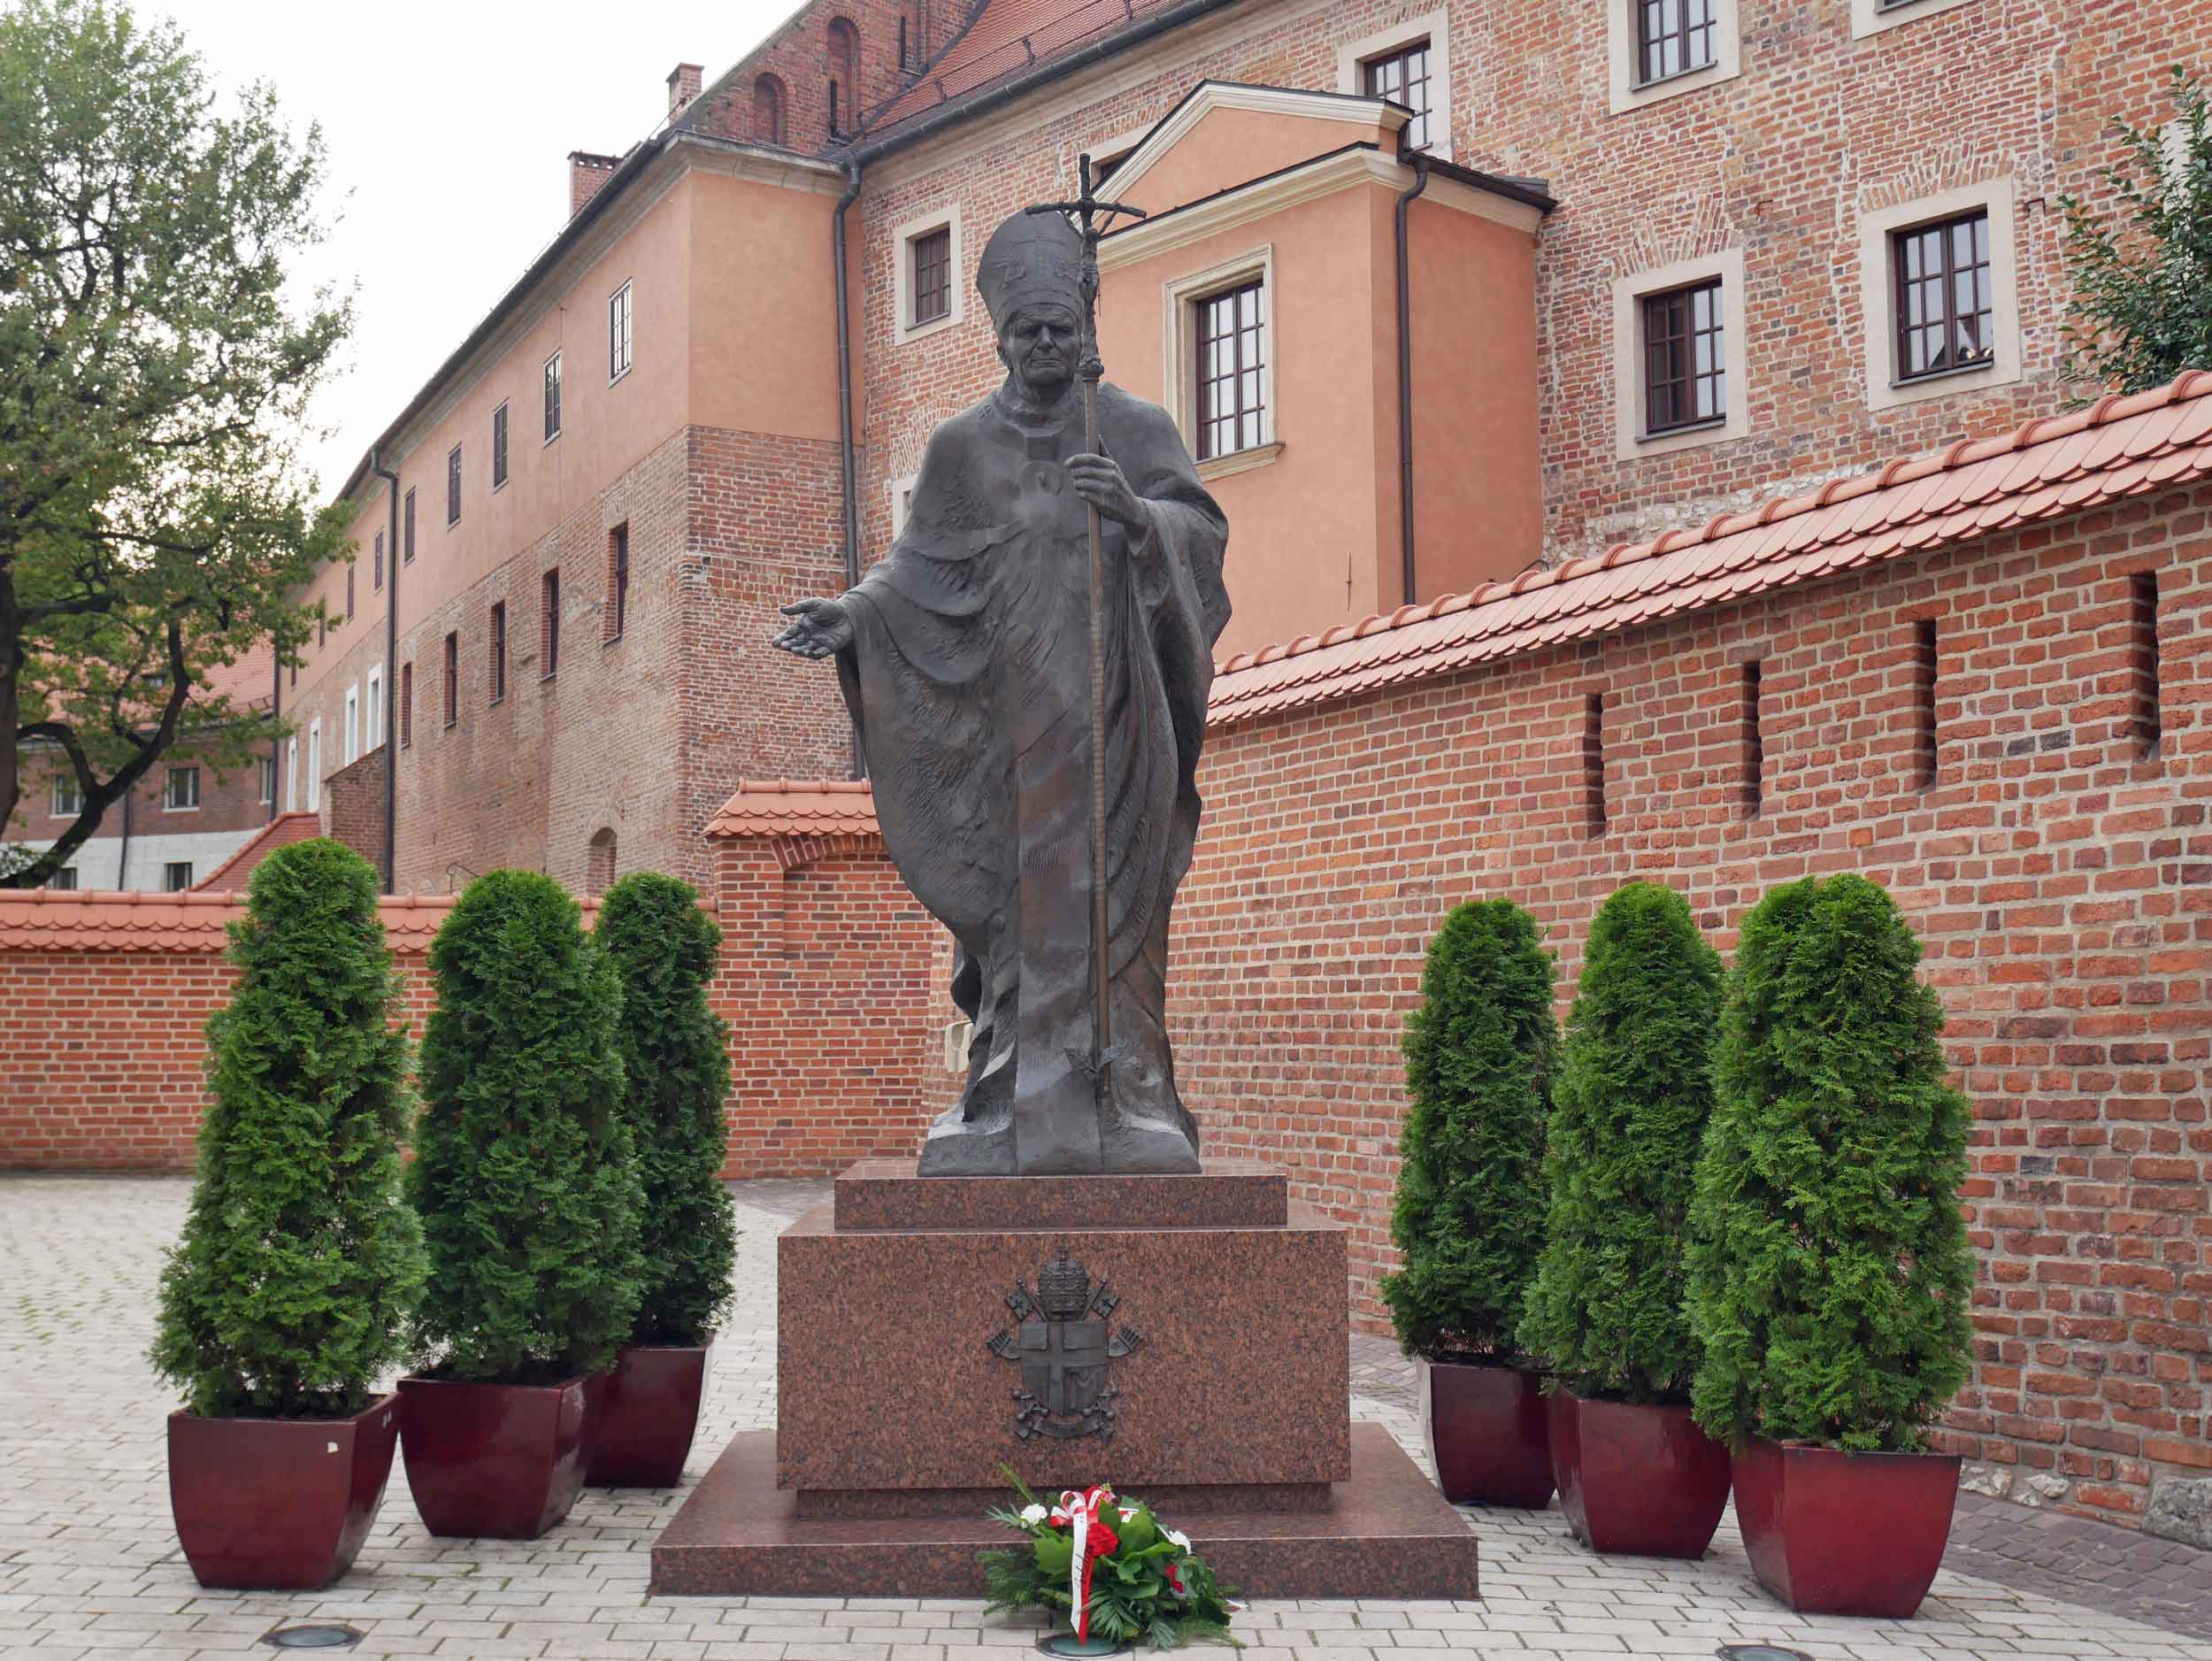 Statue of St. John Paul II, who hails from Poland,outside of Wawel Cathedral.